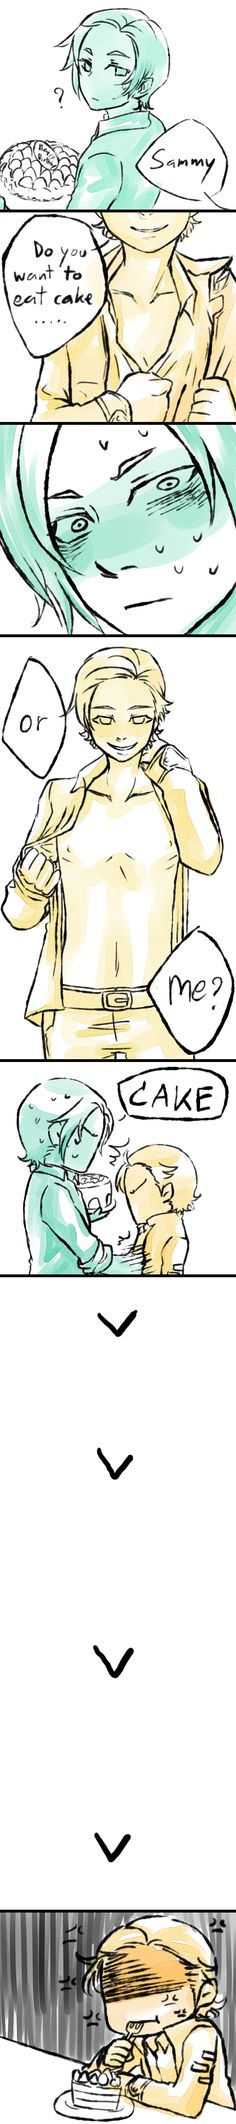 Cake or Me by ILsama